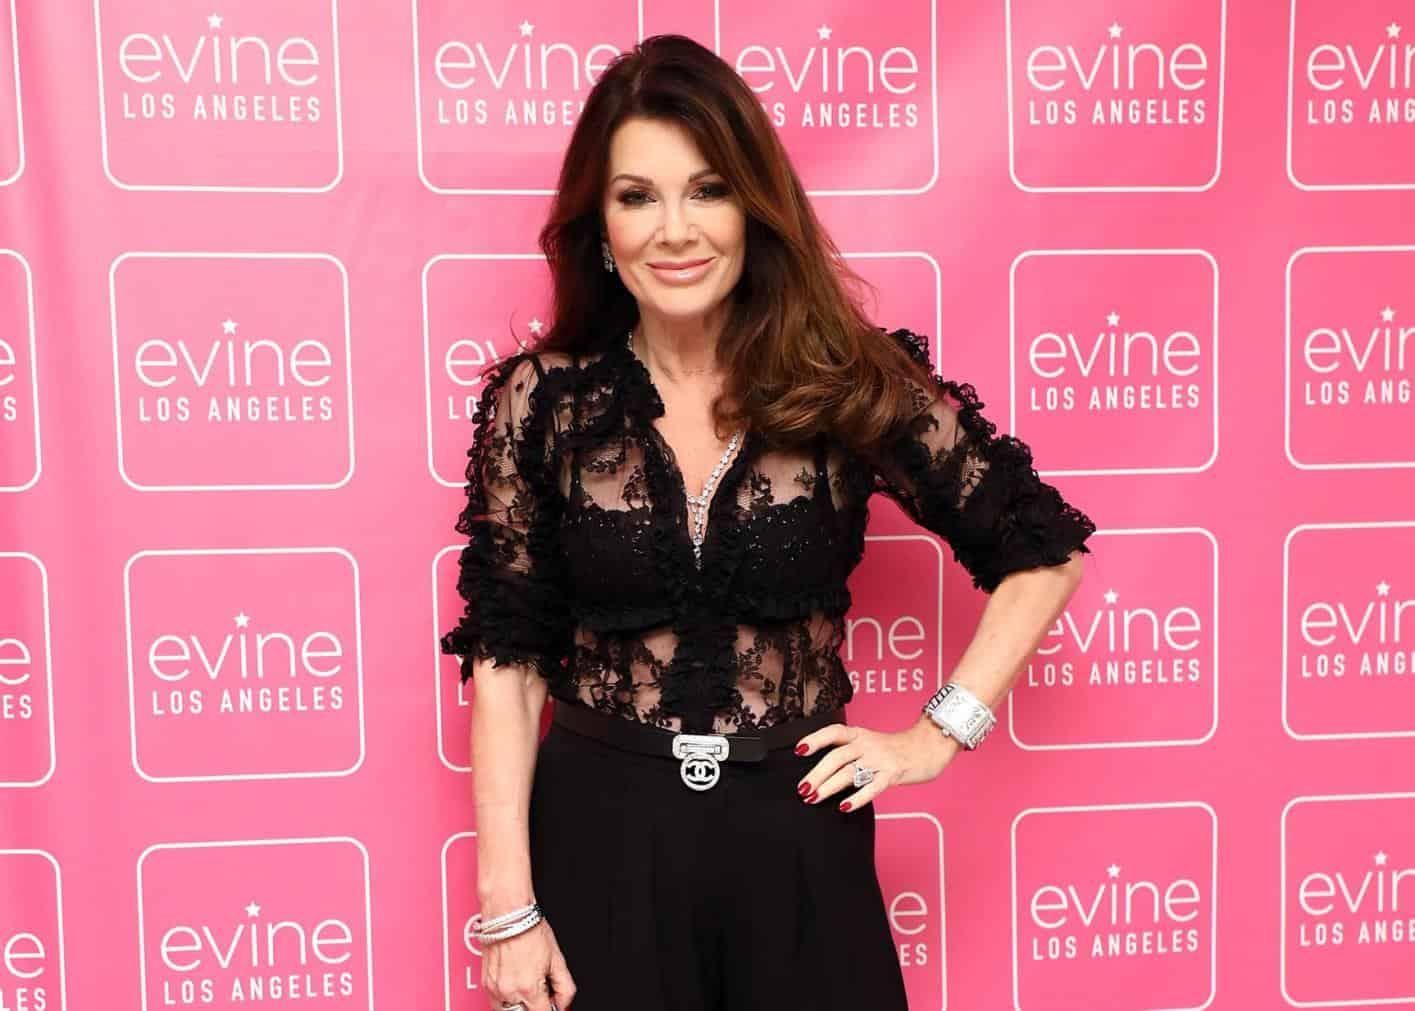 Will Lisa Vanderpump Have a Bigger Role on Vanderpump Rules After Quitting RHOBH? A Source Reveals Why She's Shifting Gears